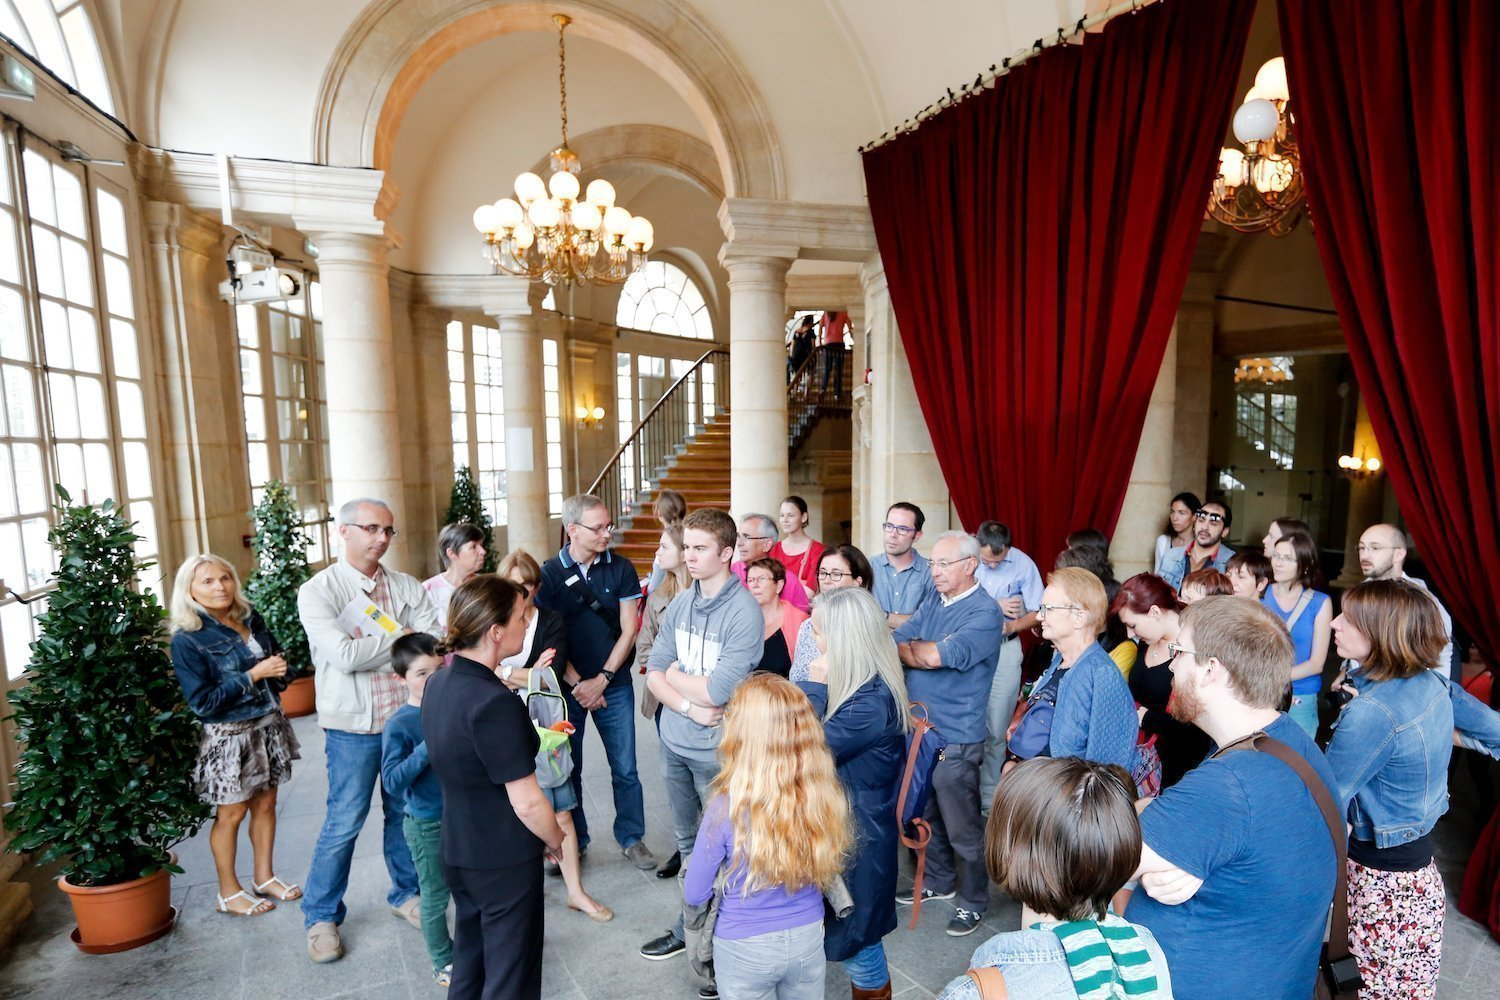 Opera in Rennes : guided tours